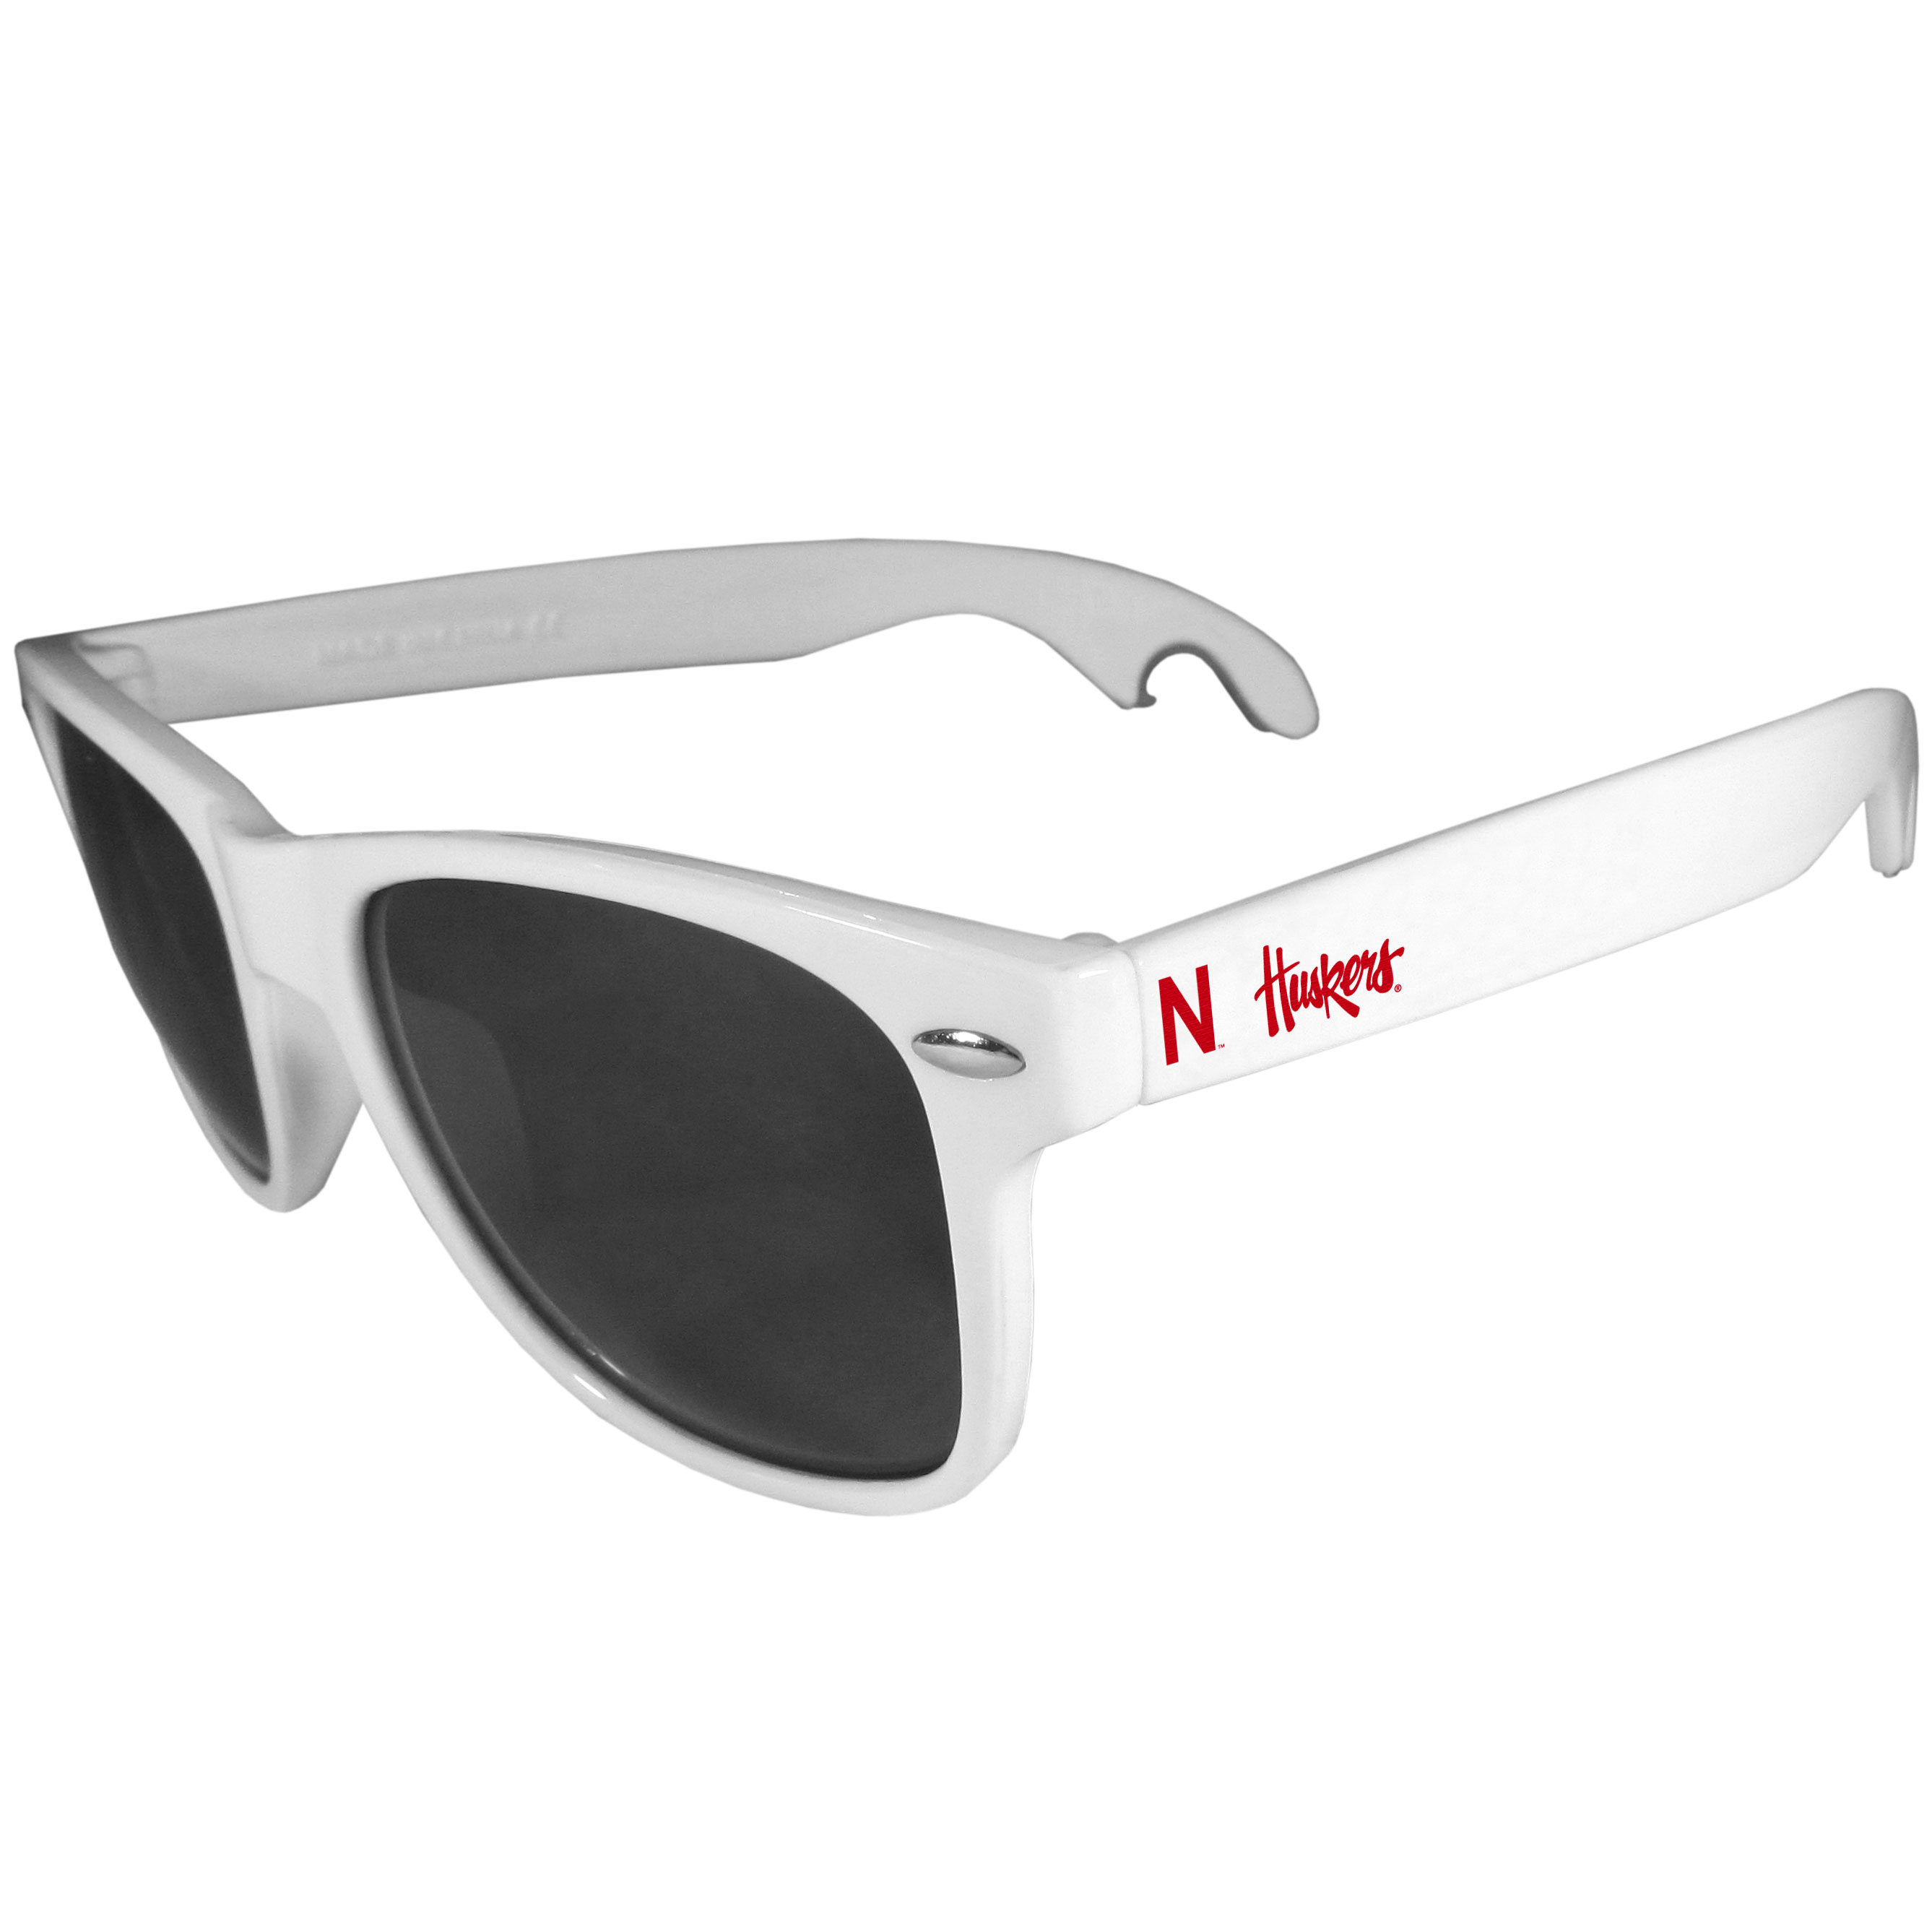 Nebraska Cornhuskers Beachfarer Bottle Opener Sunglasses, White - Seriously, these sunglasses open bottles! Keep the party going with these amazing Nebraska Cornhuskers bottle opener sunglasses. The stylish retro frames feature team designs on the arms and functional bottle openers on the end of the arms. Whether you are at the beach or having a backyard BBQ on game day, these shades will keep your eyes protected with 100% UVA/UVB protection and keep you hydrated with the handy bottle opener arms.